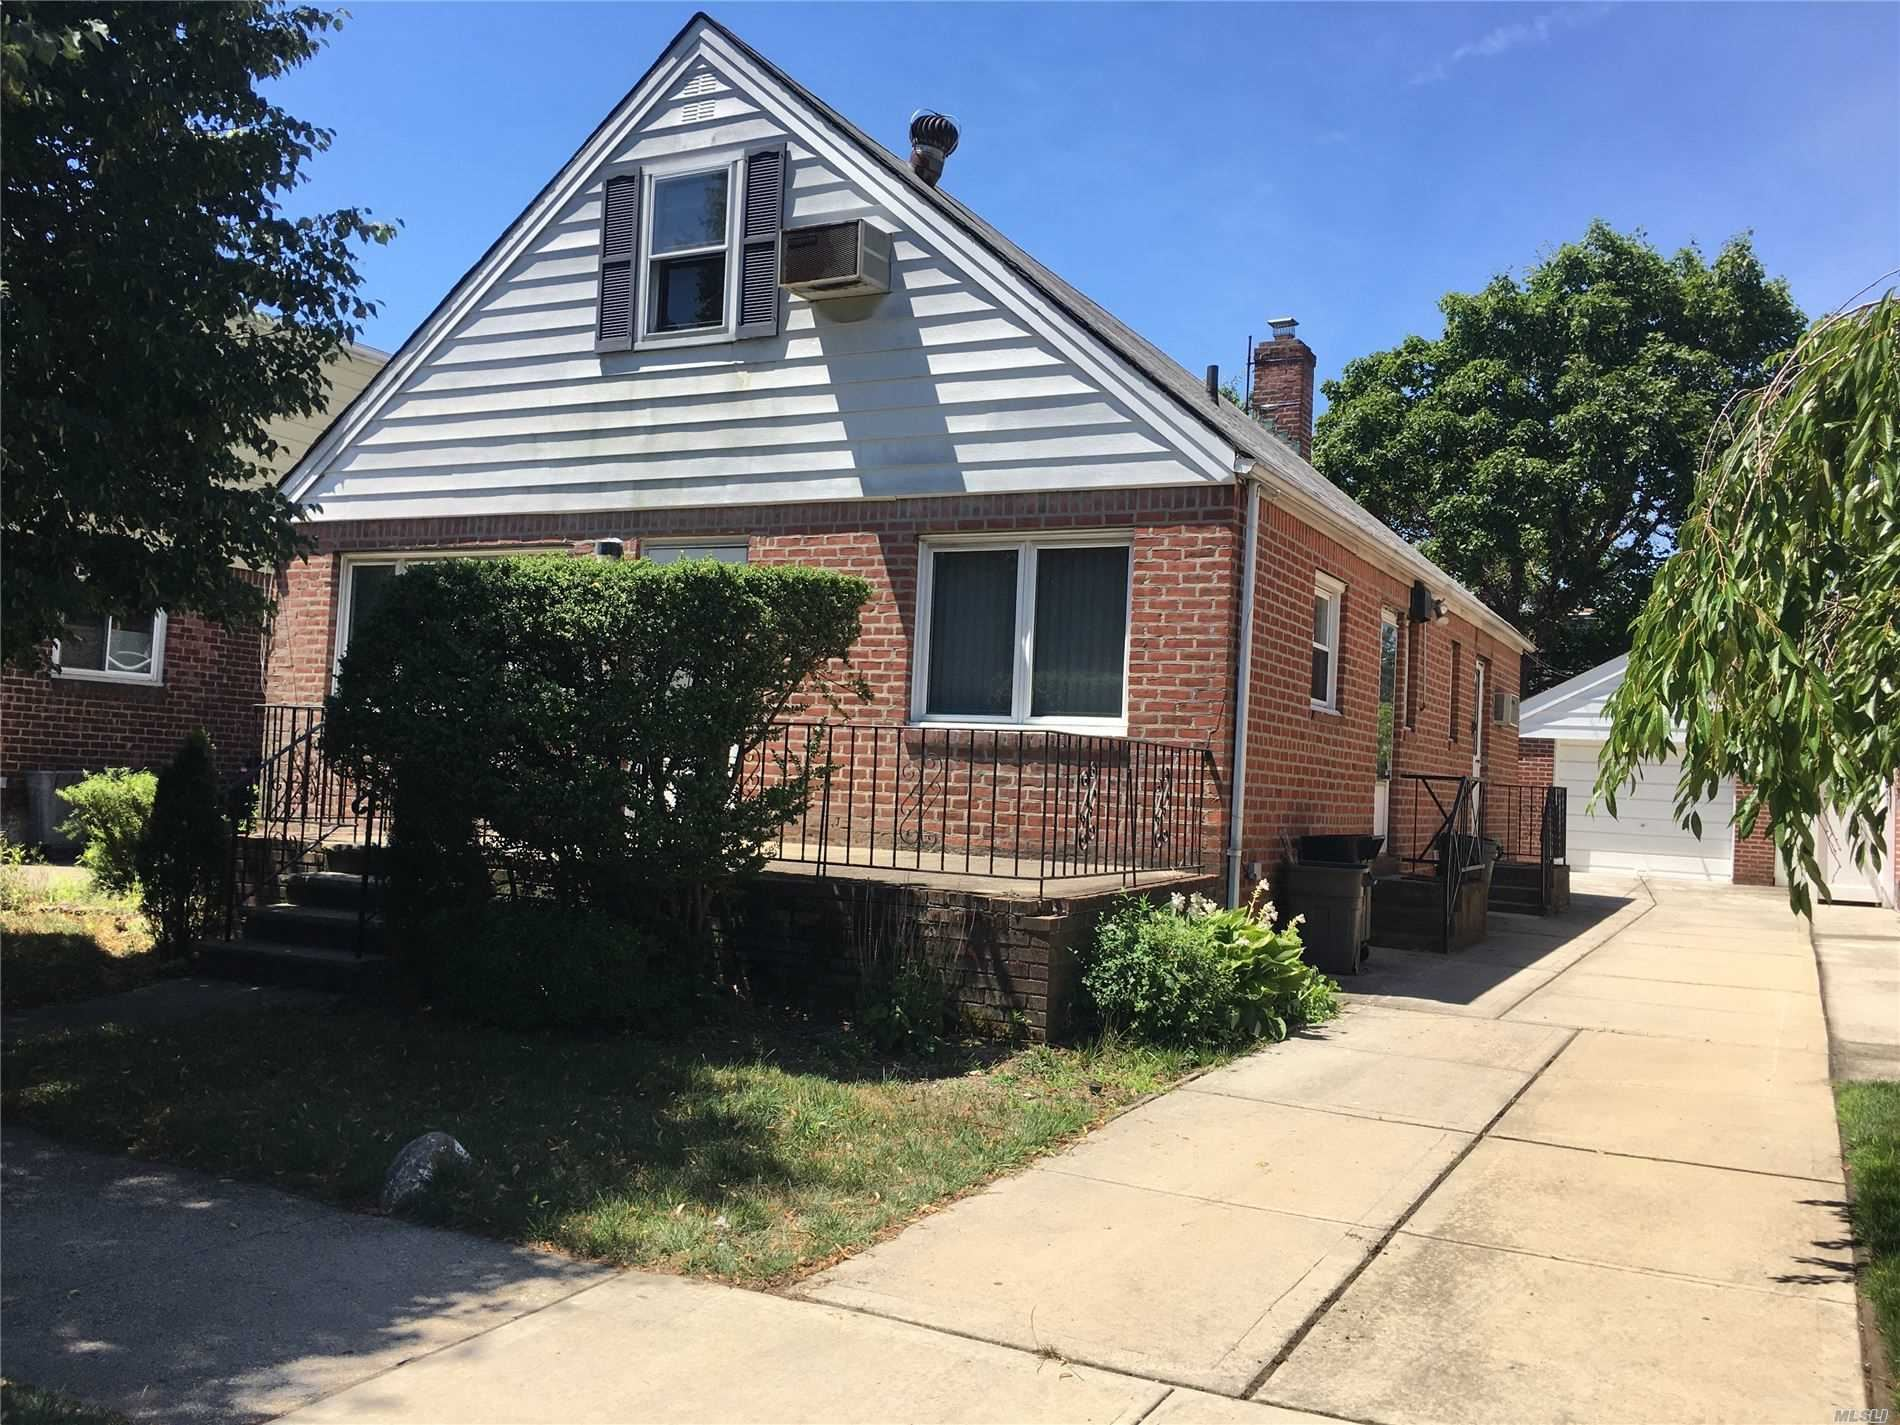 76-36 168 Street, Fresh Meadows, NY 11366 - MLS#: 3234394